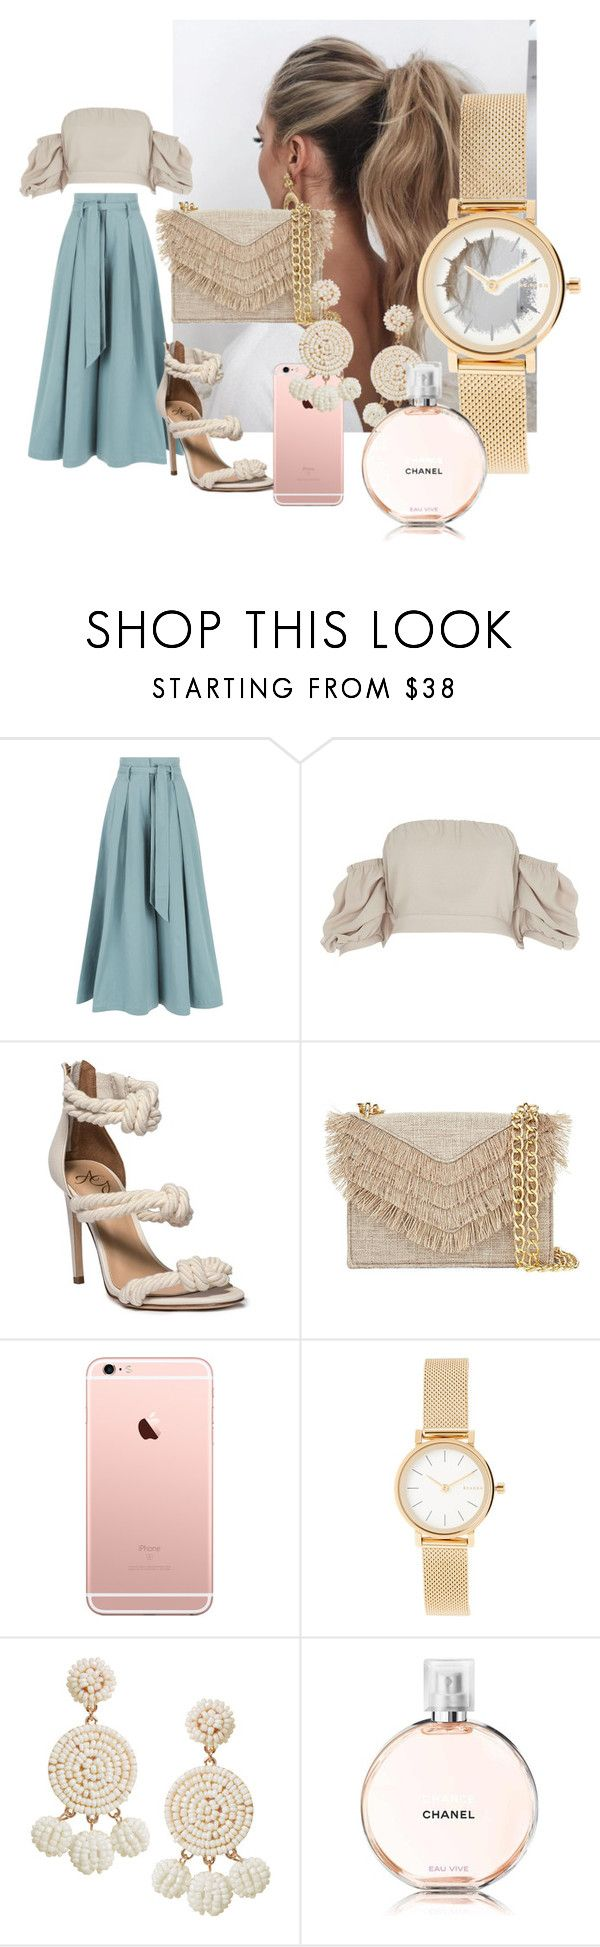 """""""Untitled #16"""" by androsales24 on Polyvore featuring Temperley London, Love Couture, River Island, Cynthia Rowley, Skagen, Humble Chic and Chanel"""